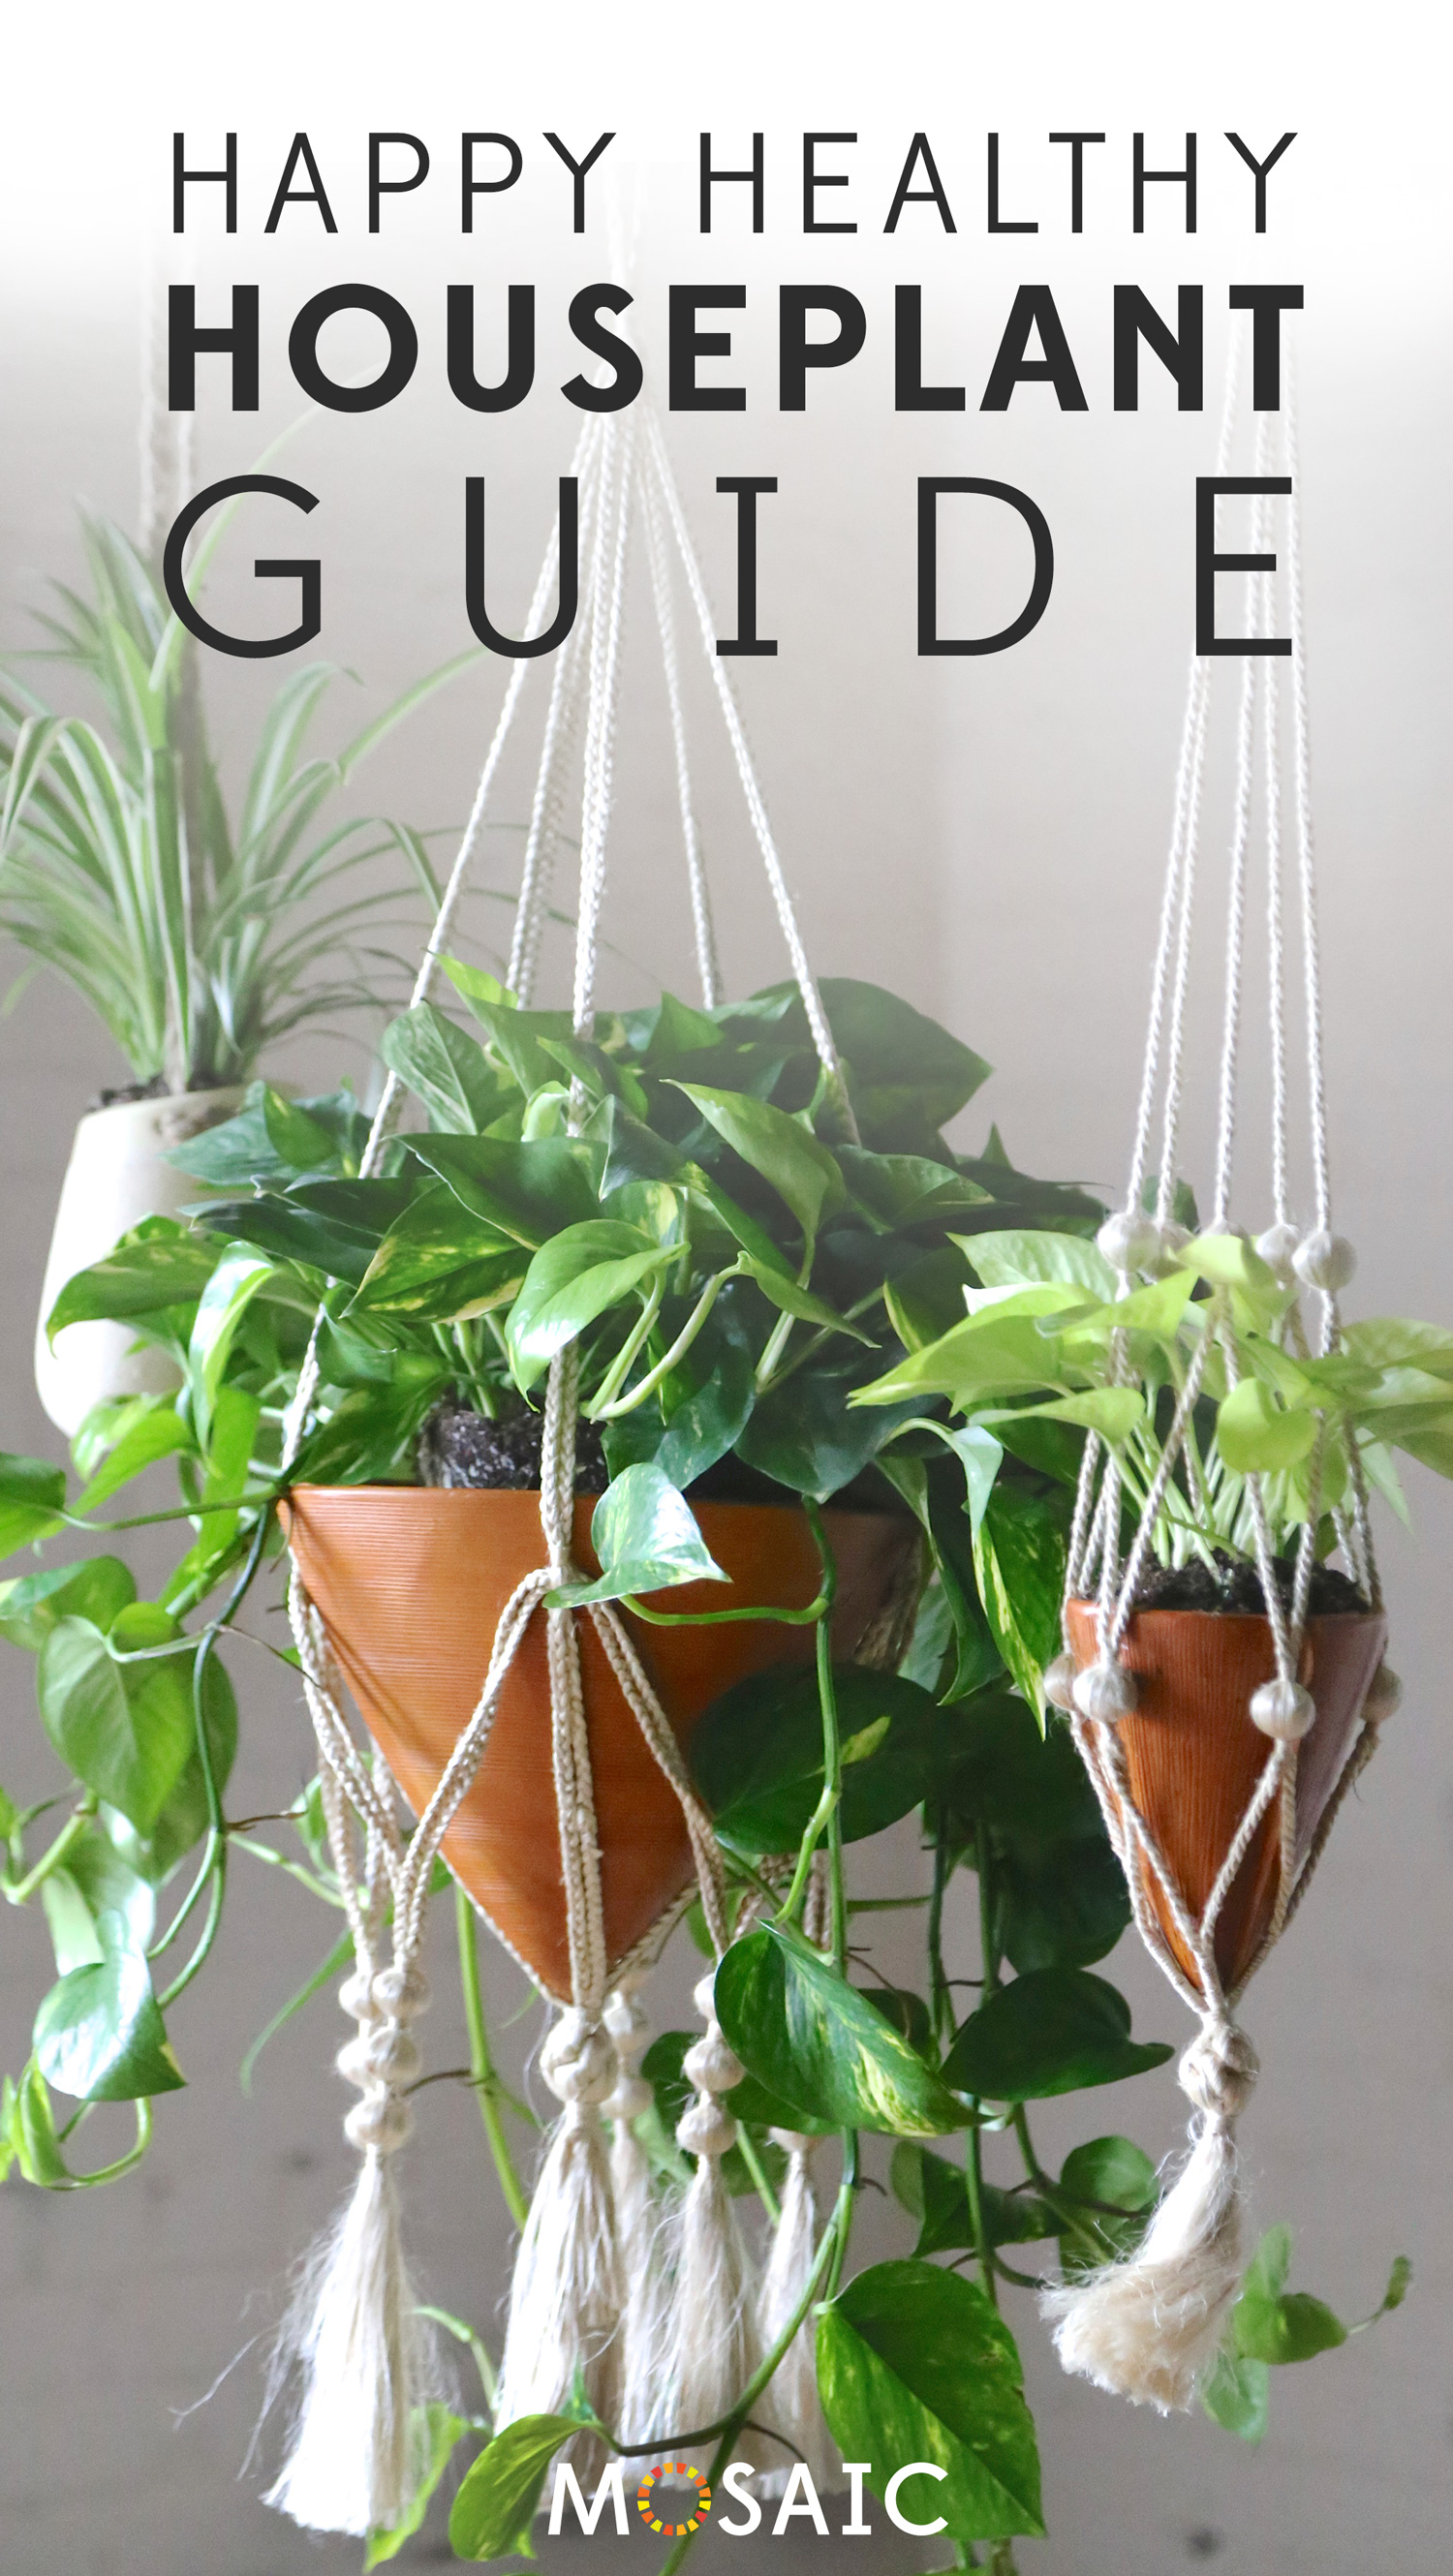 Snake Plant   Fair Trade Planter from Ten Thousand Villages — Your guide to happy healthy houseplants